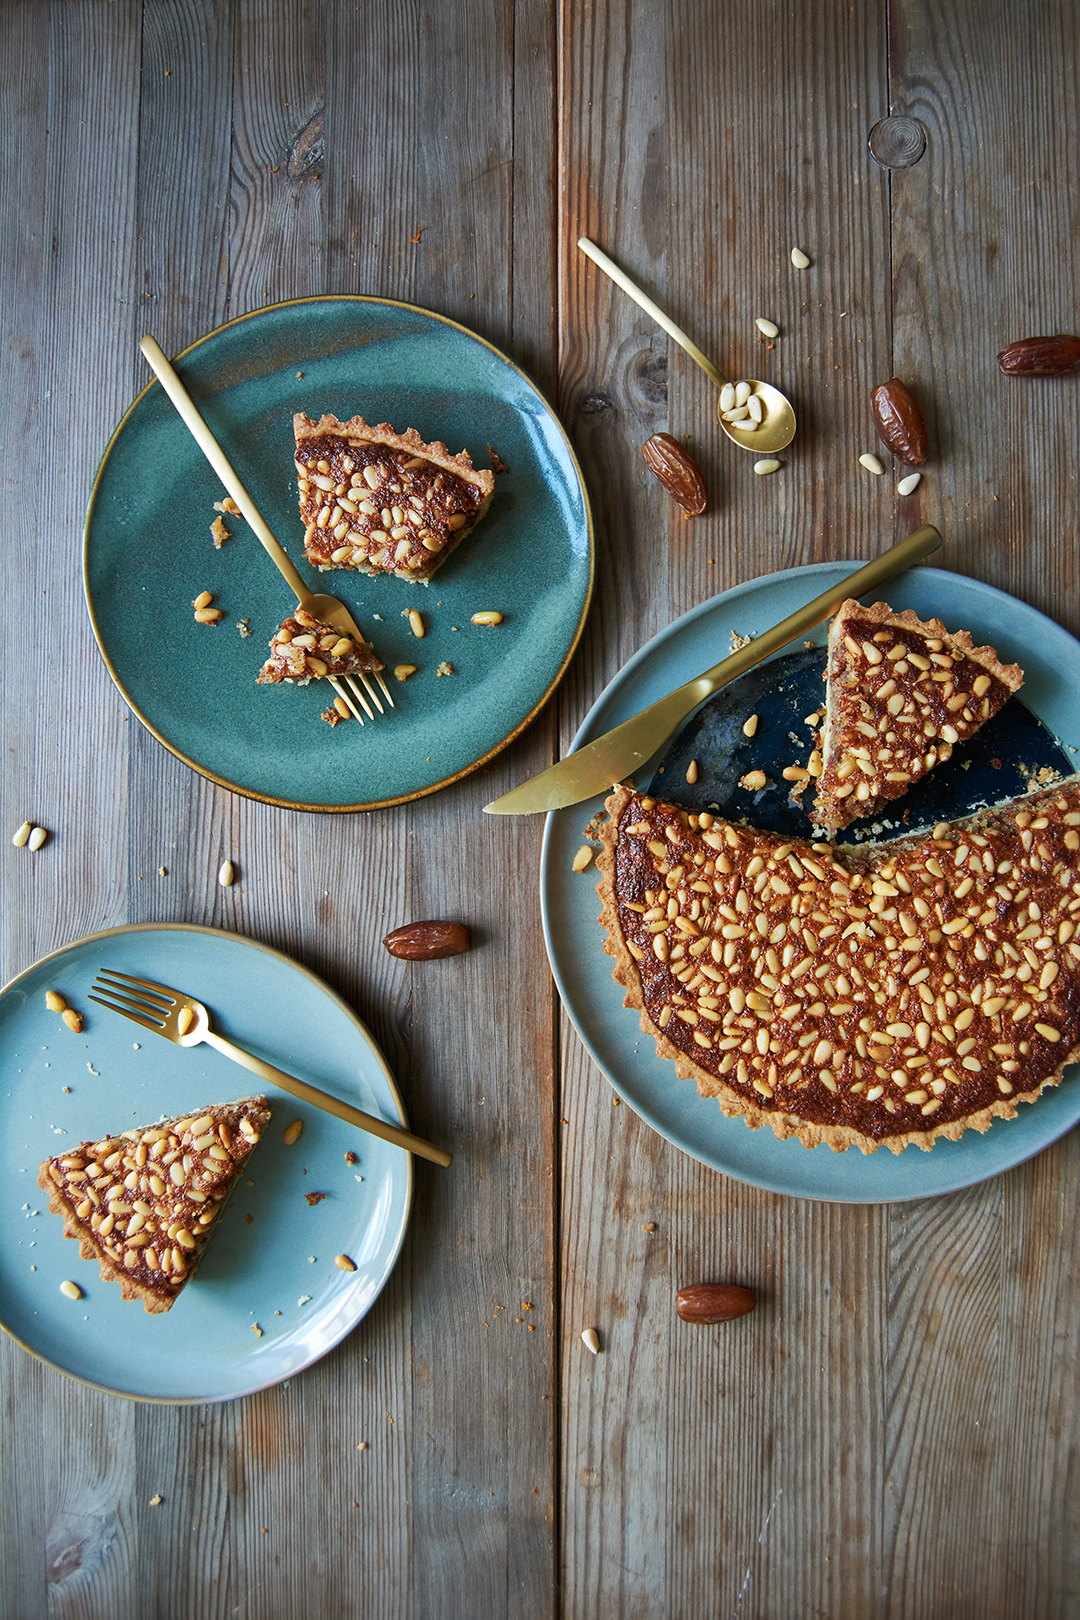 Provençal Pine Nut, Date, and Honey Tart